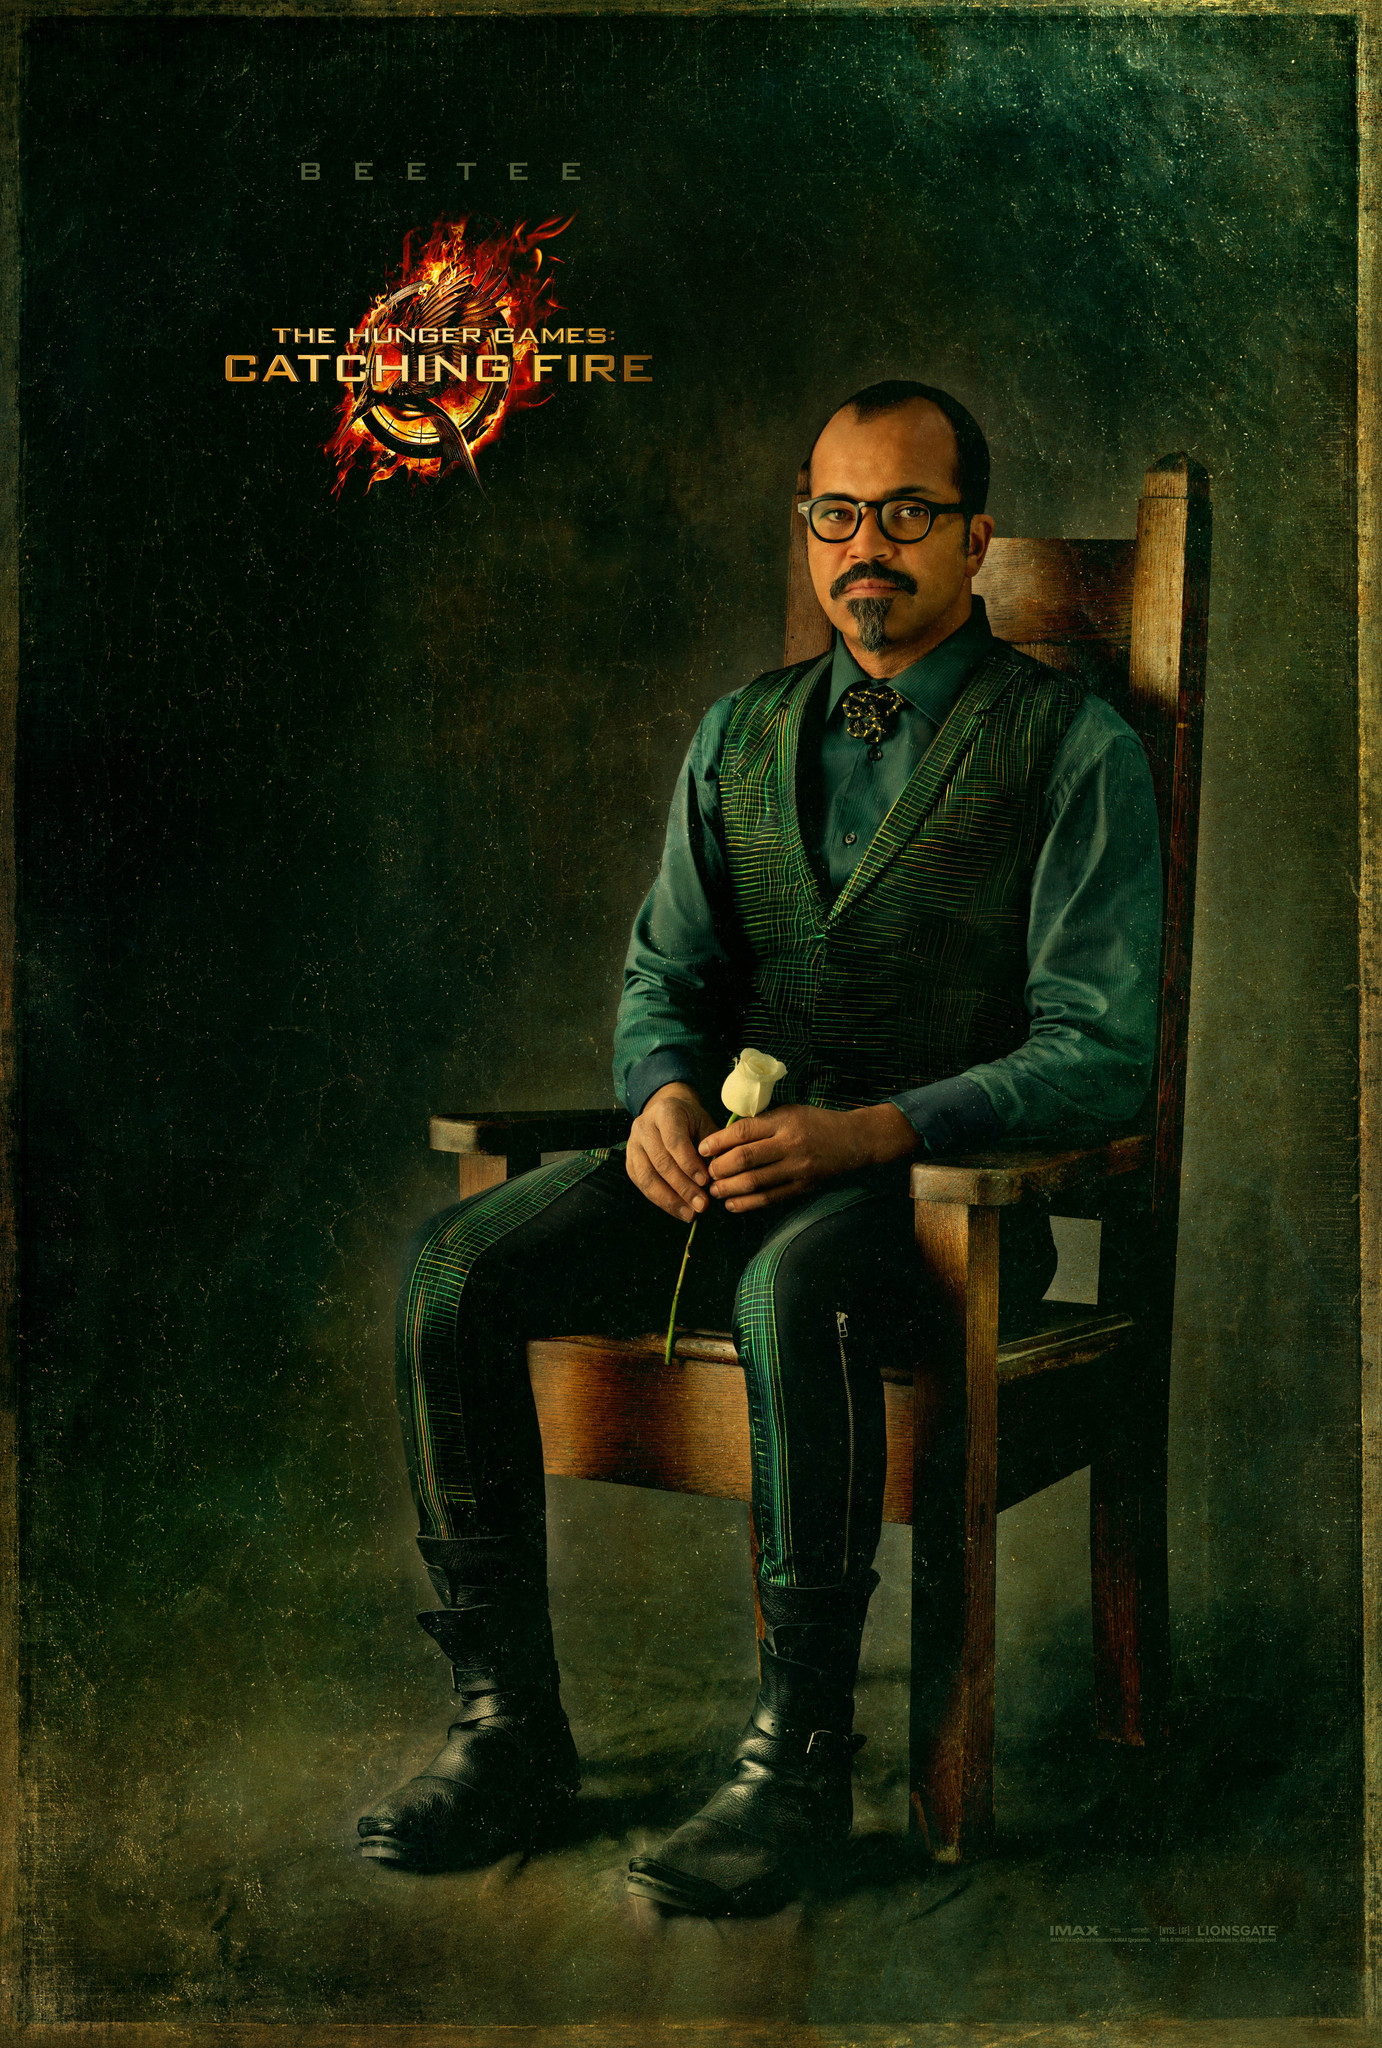 The Hunger Games: Catching Fire - Movie Poster #4 (Original)